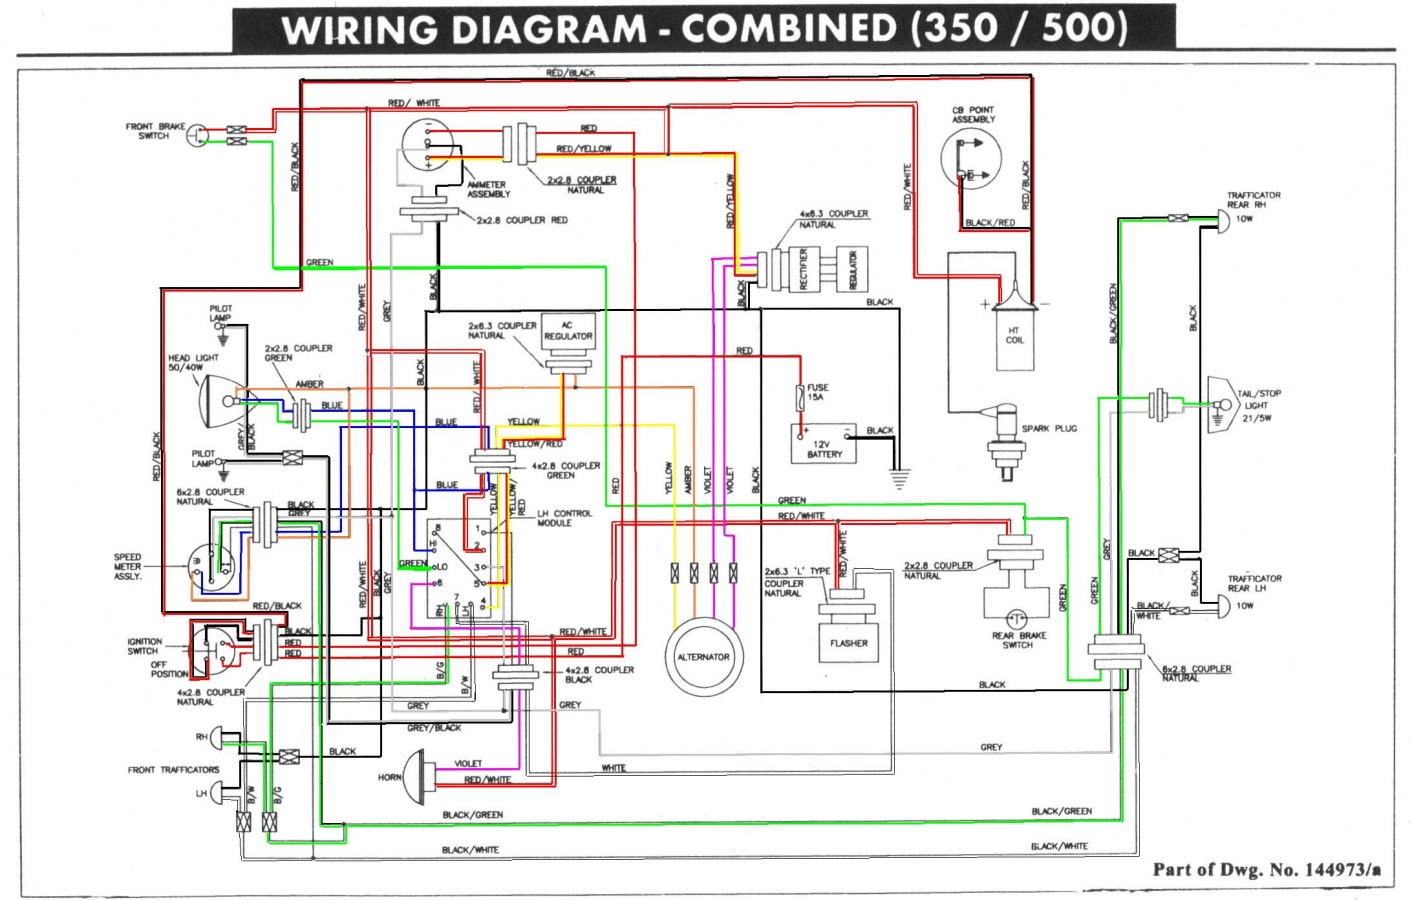 diagrams 875667 royal enfield 350 wiring diagram royal enfield royal enfield wiring diagrams at bayanpartner.co